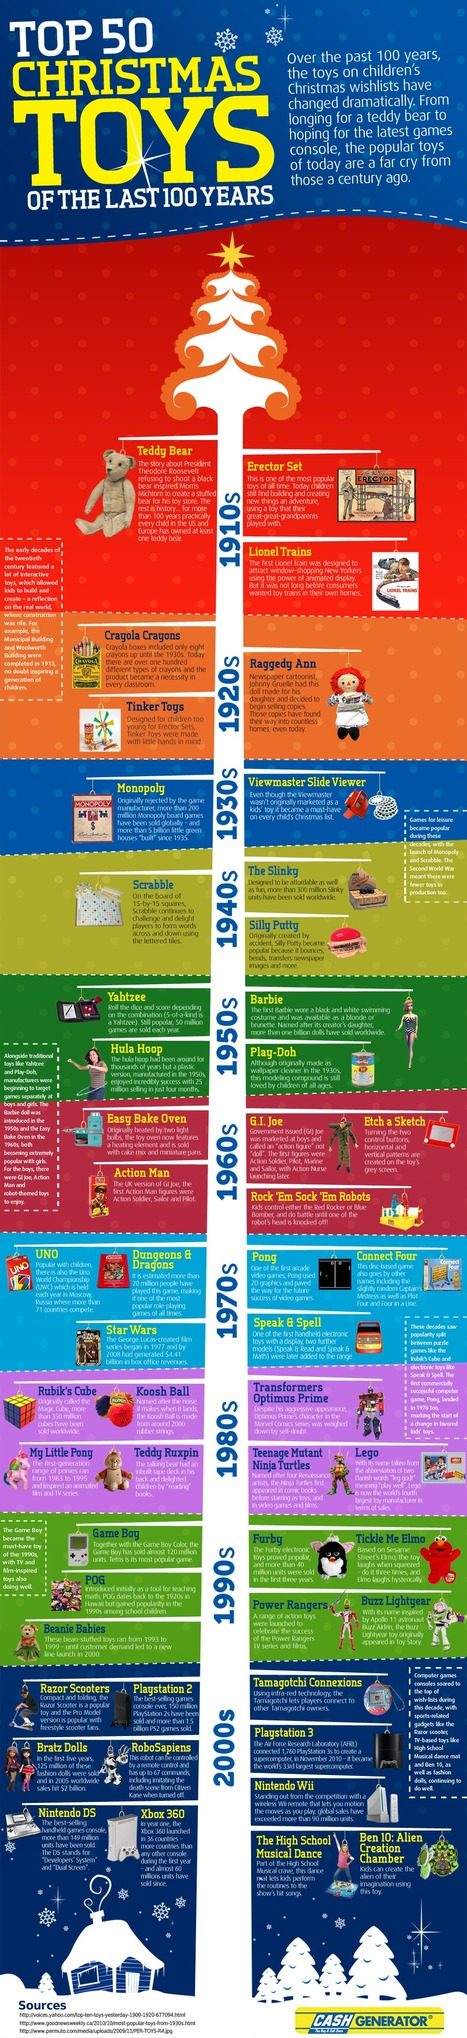 Top 50 Christmas Toys of the Past Century  @The_Infographic @CashGeneratorUK   freehand illustration and graphic design   Scoop.it